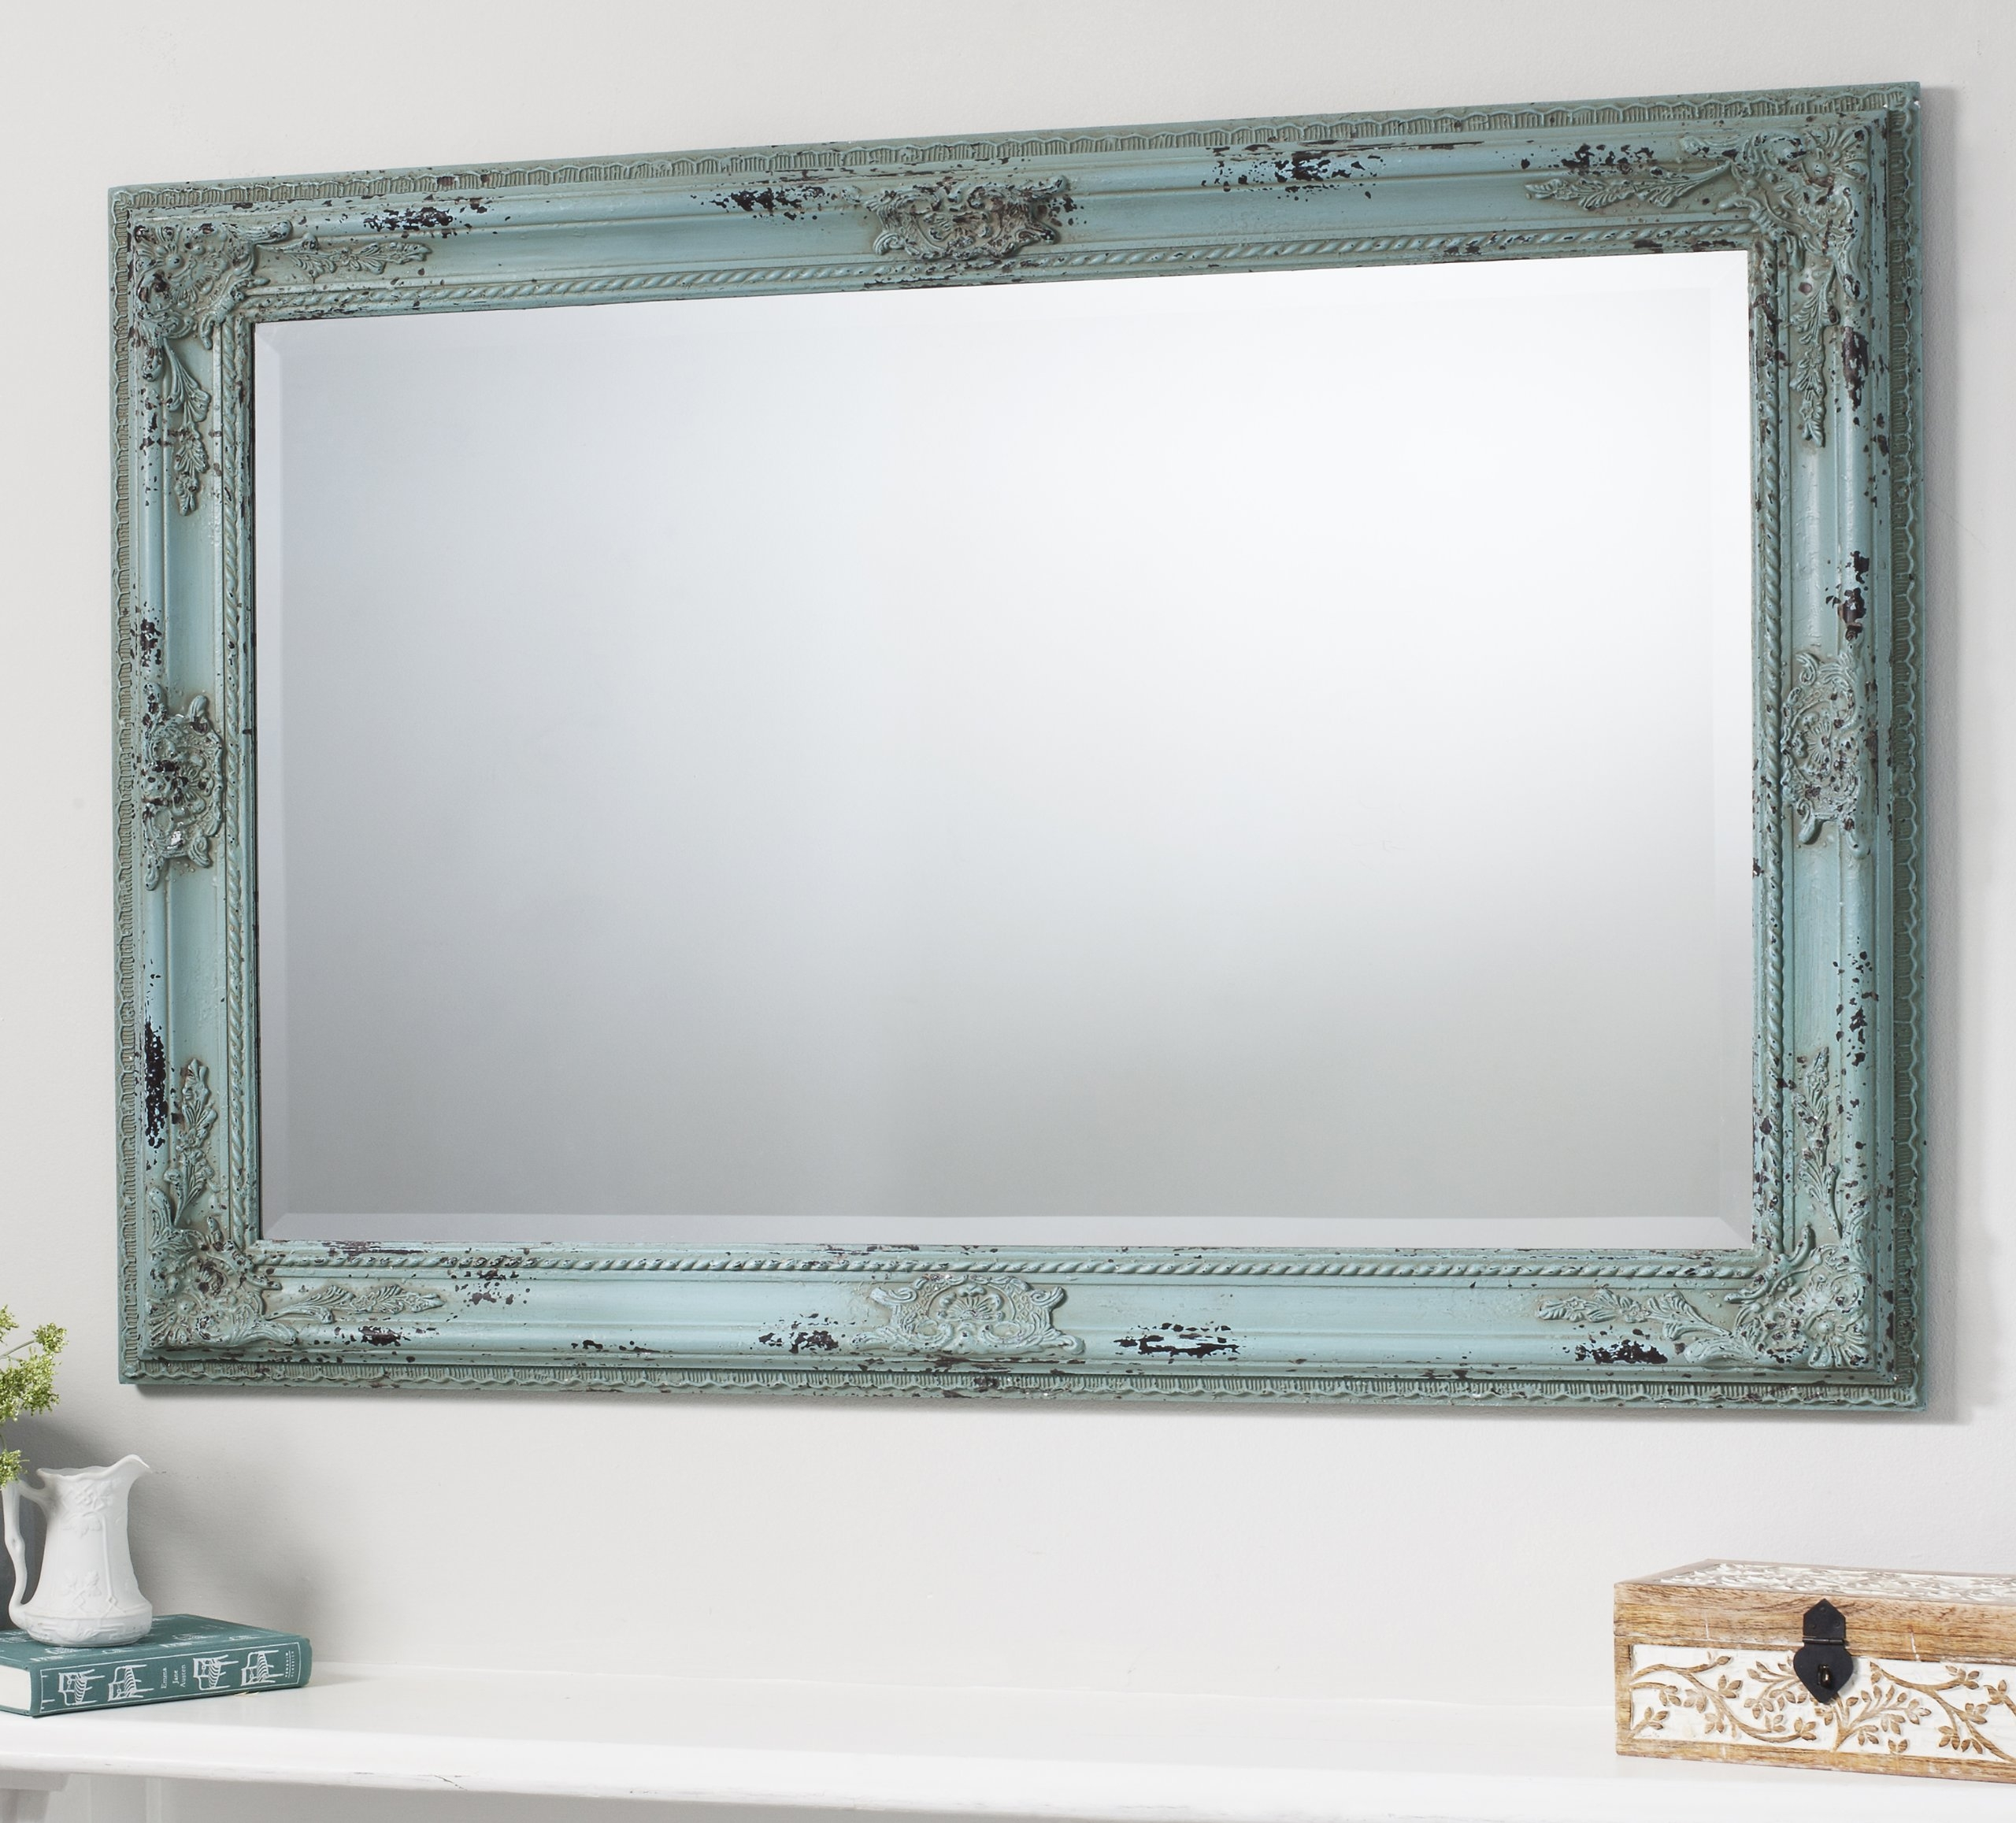 Kingsley Large Vintage Teal Blue Rectangle Wall Mirror 435 X With Regard To Large Hallway Mirror (Image 12 of 15)